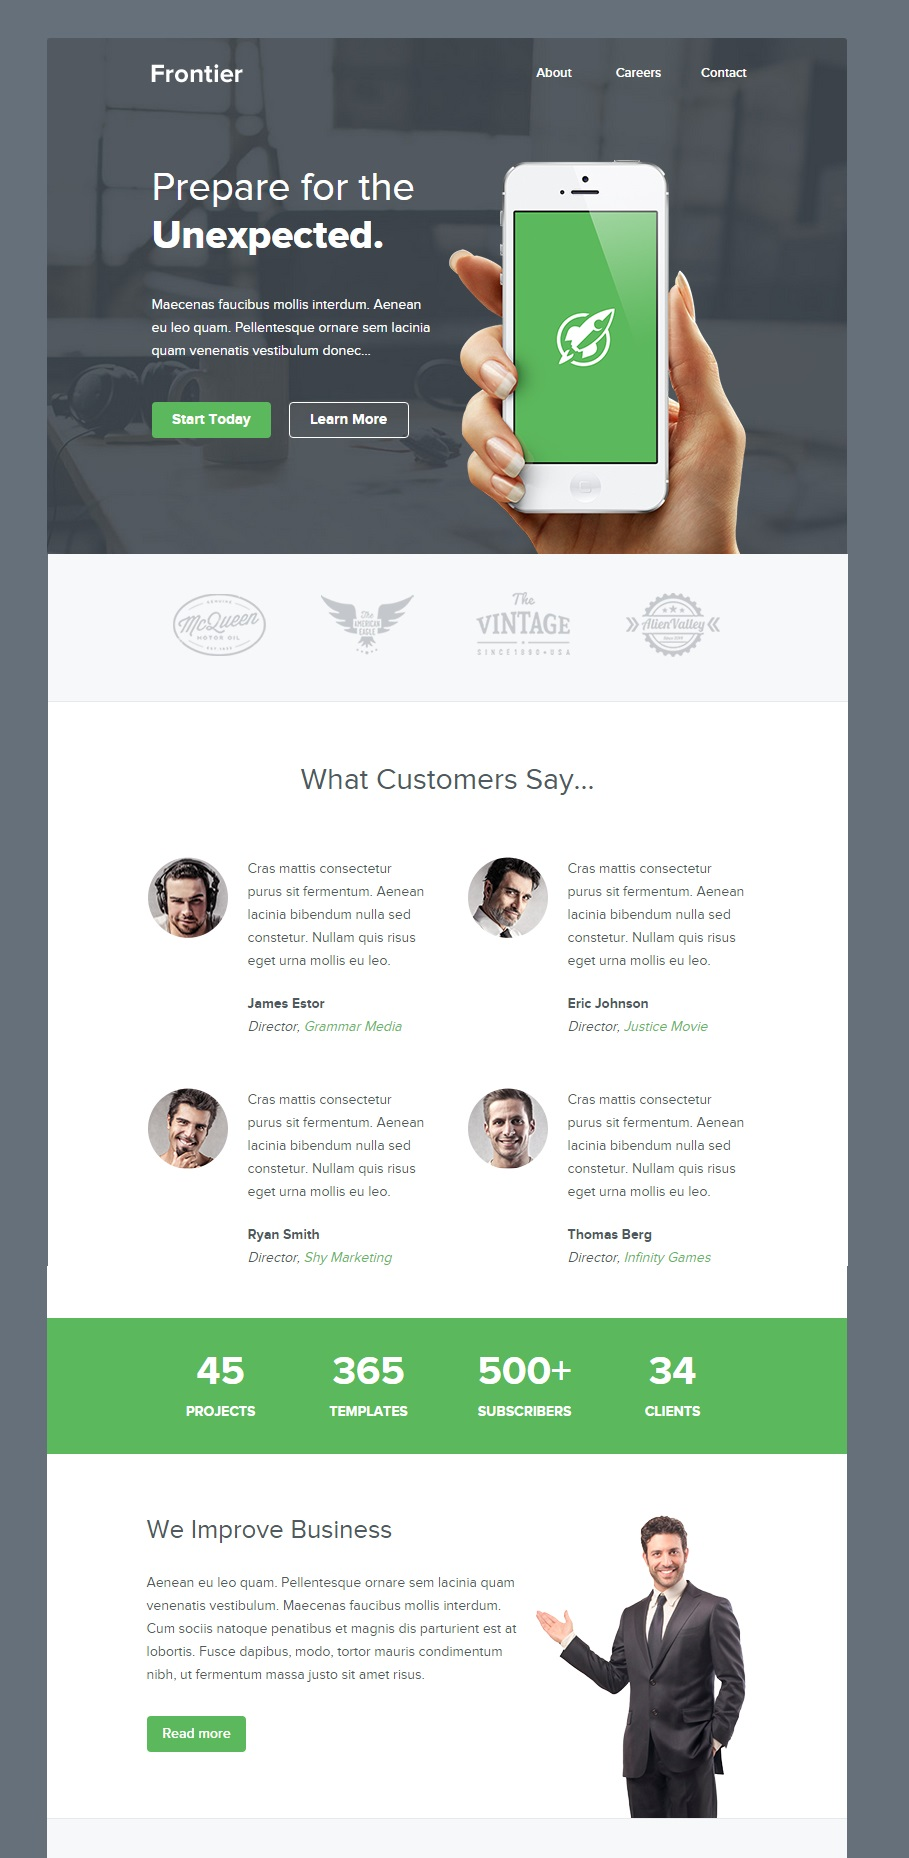 Frontier email template